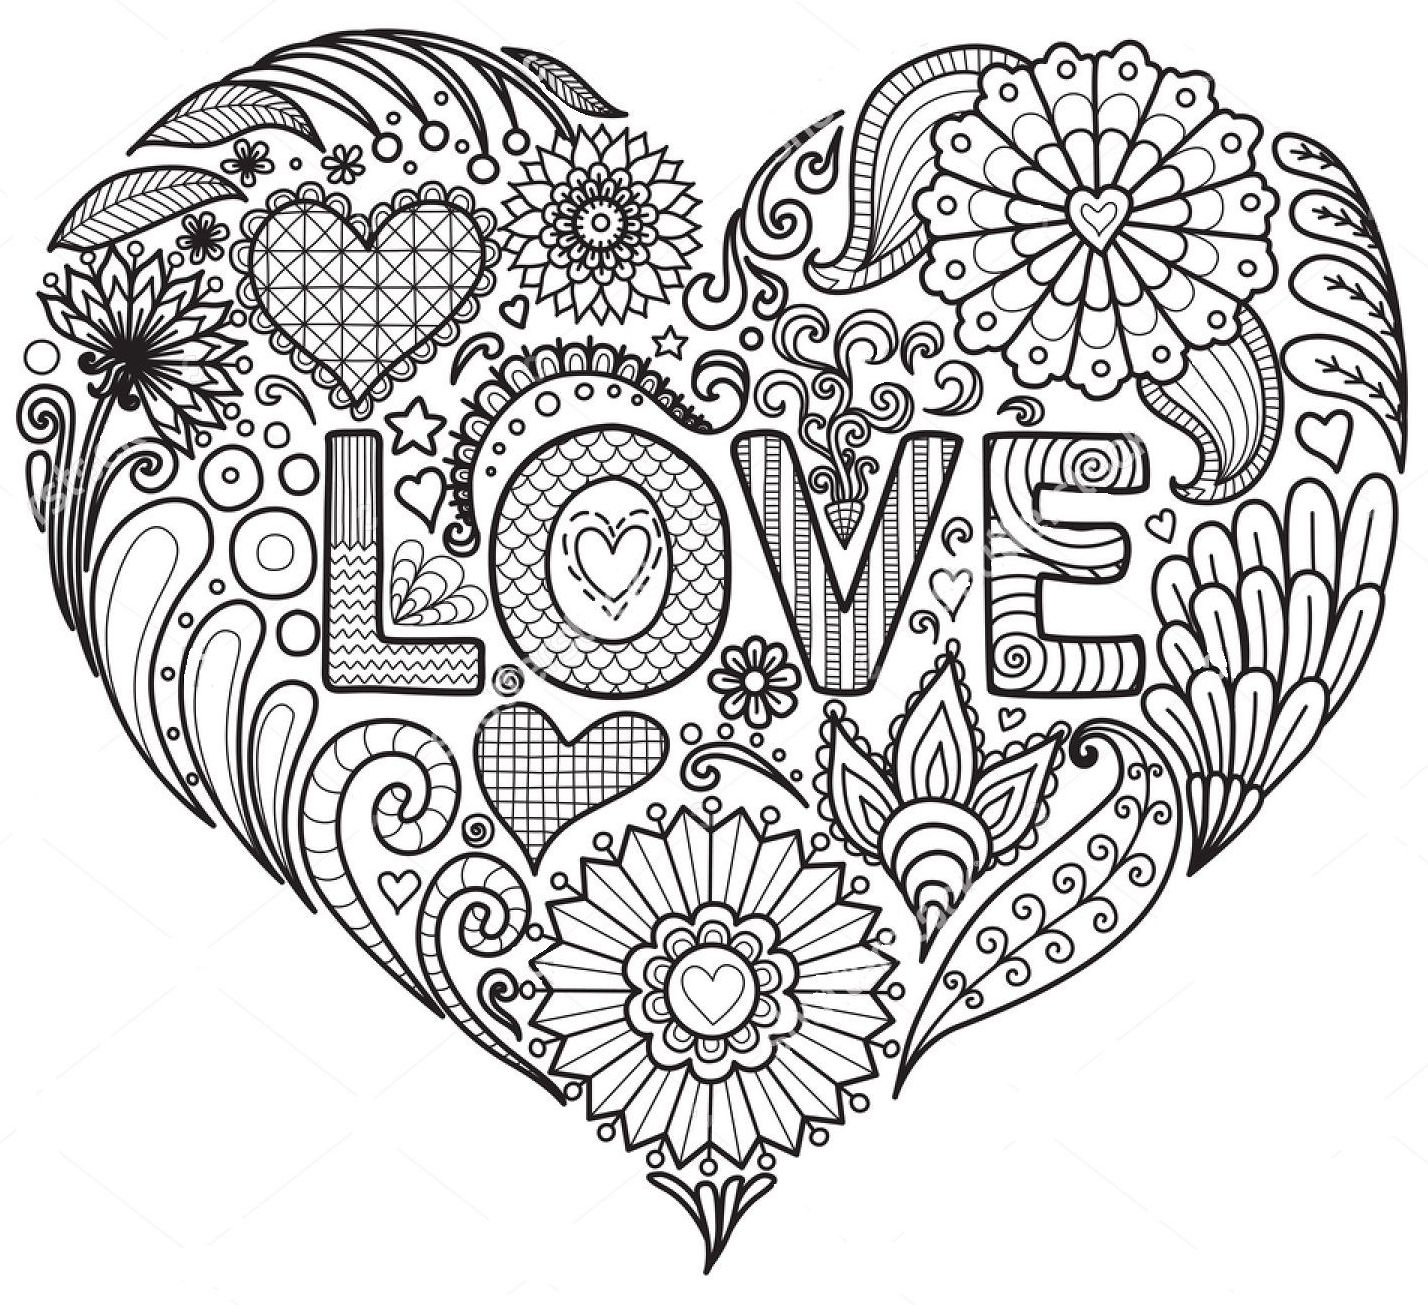 mandala 1 corazon love